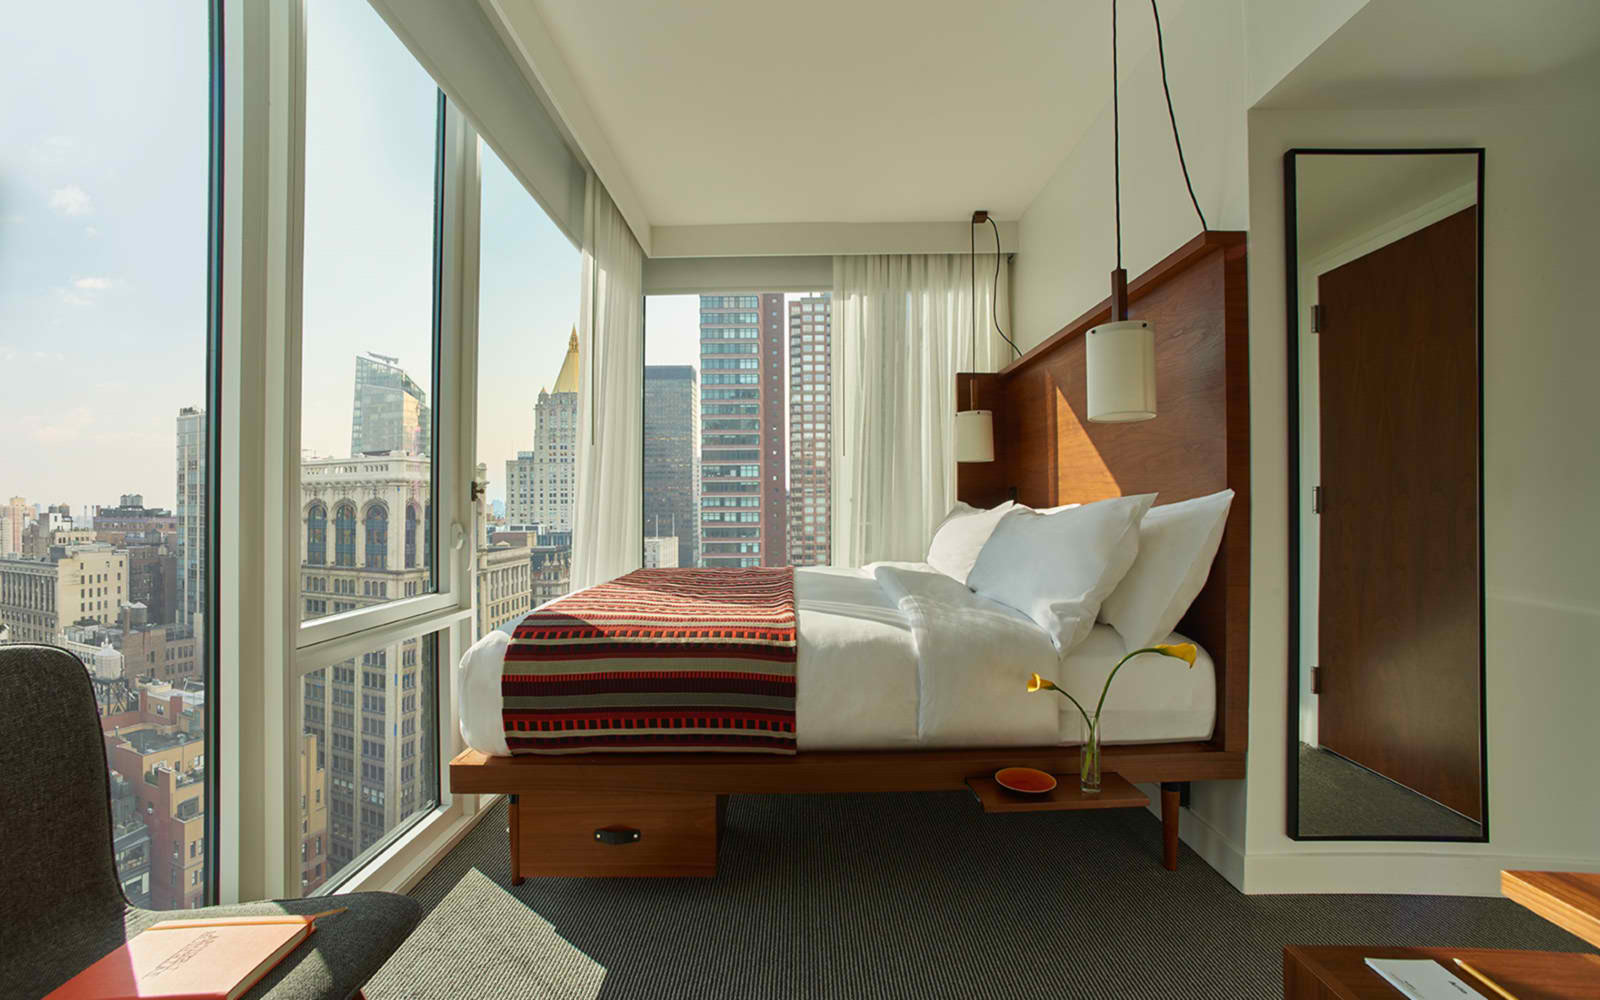 Arlo NoMad King Sky room with a large bed face floor to ceiling windows with city view